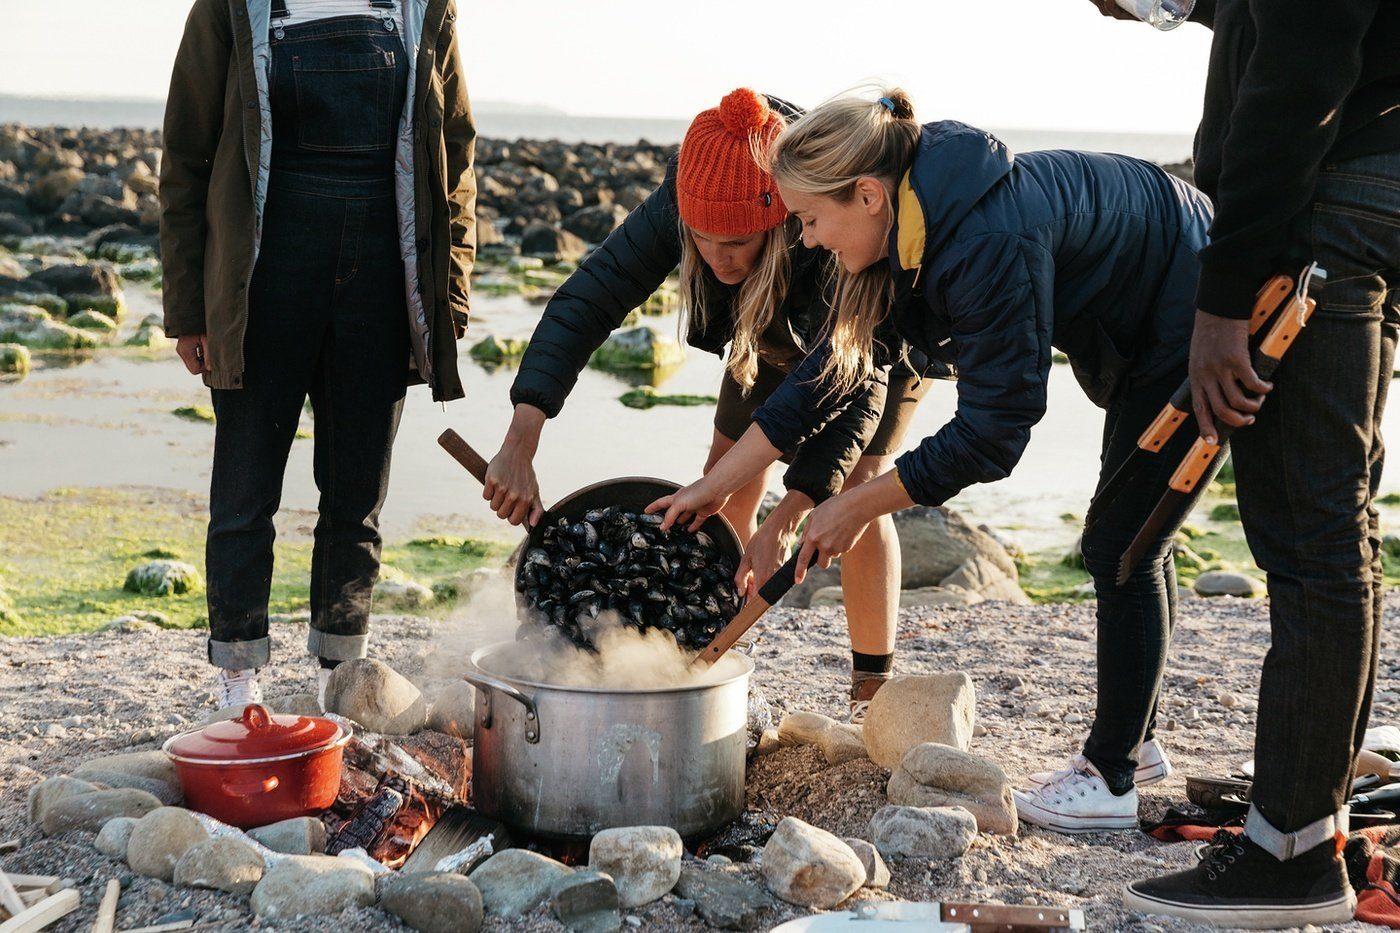 Cooking mussels - one of your best seafood options in terms of sustainability with the Finisterre crew